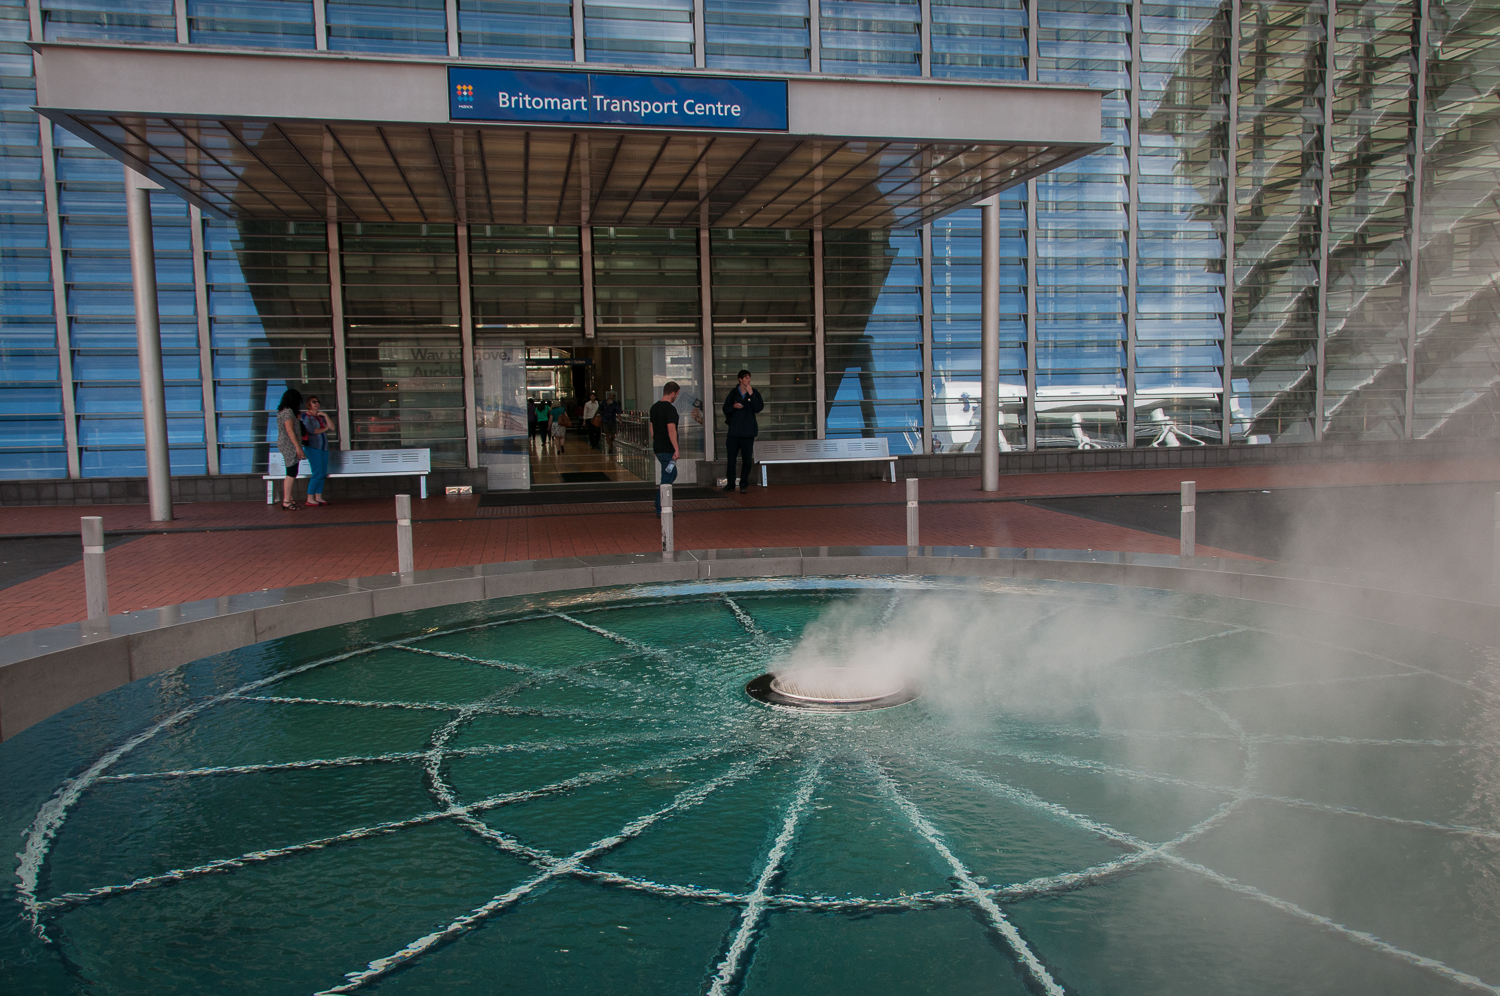 Fountain outside Britomart